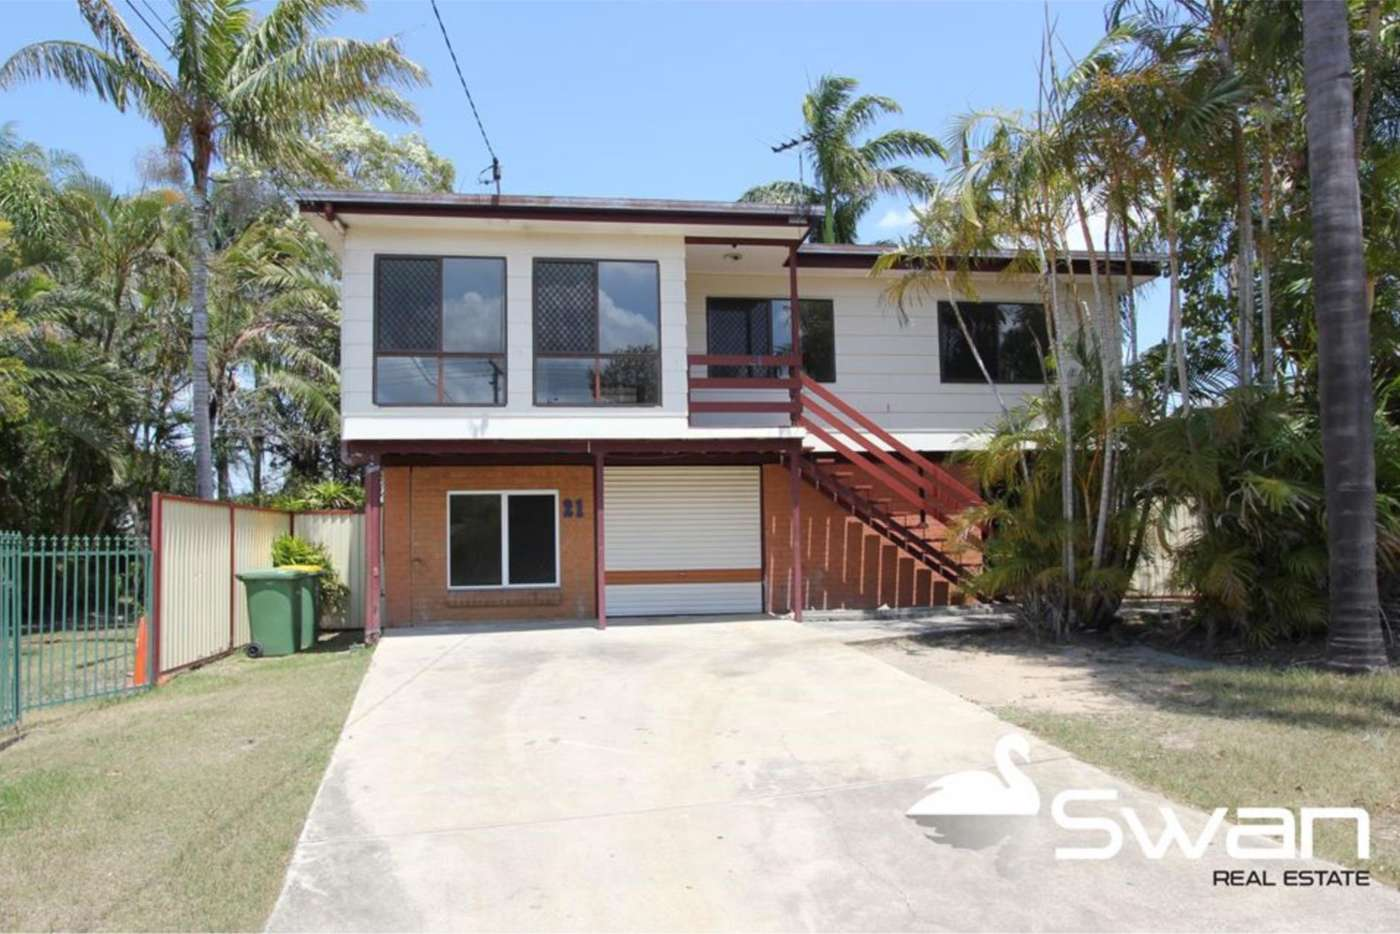 Main view of Homely house listing, 21 Olympia St, Marsden QLD 4132